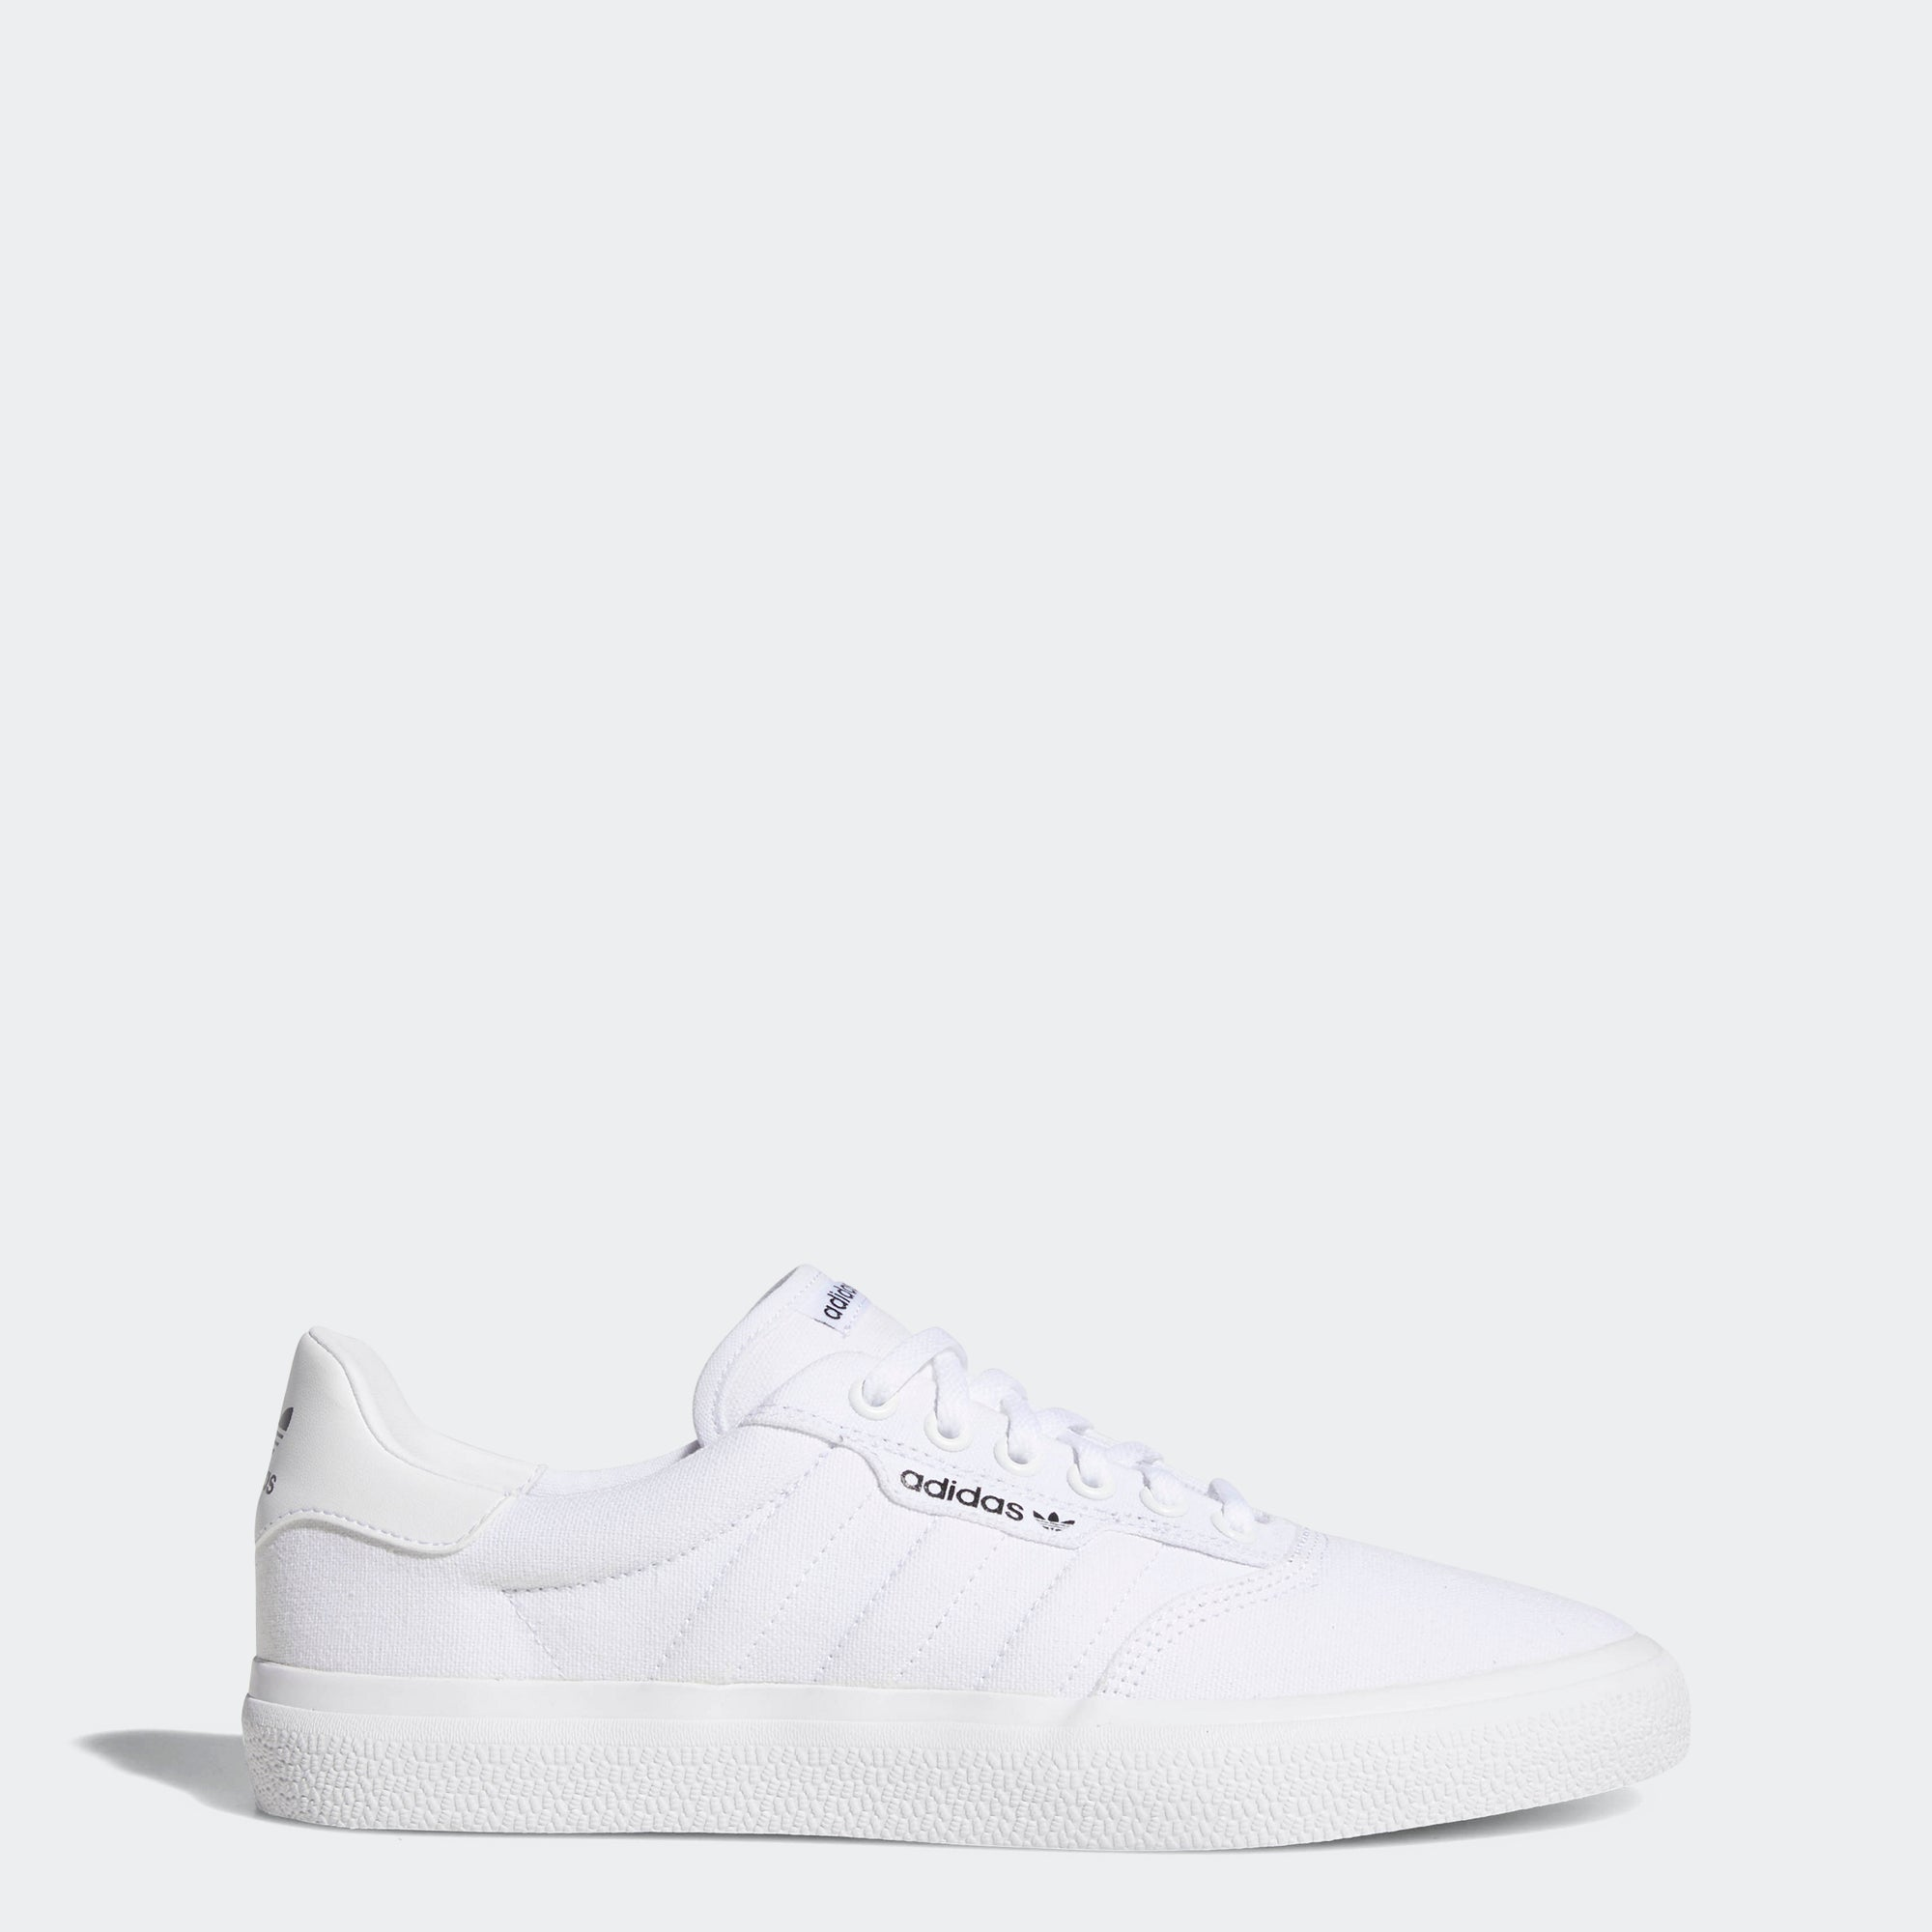 best service 3ca71 75242 Mens adidas Originals 3MC Vulc Shoes Cloud White